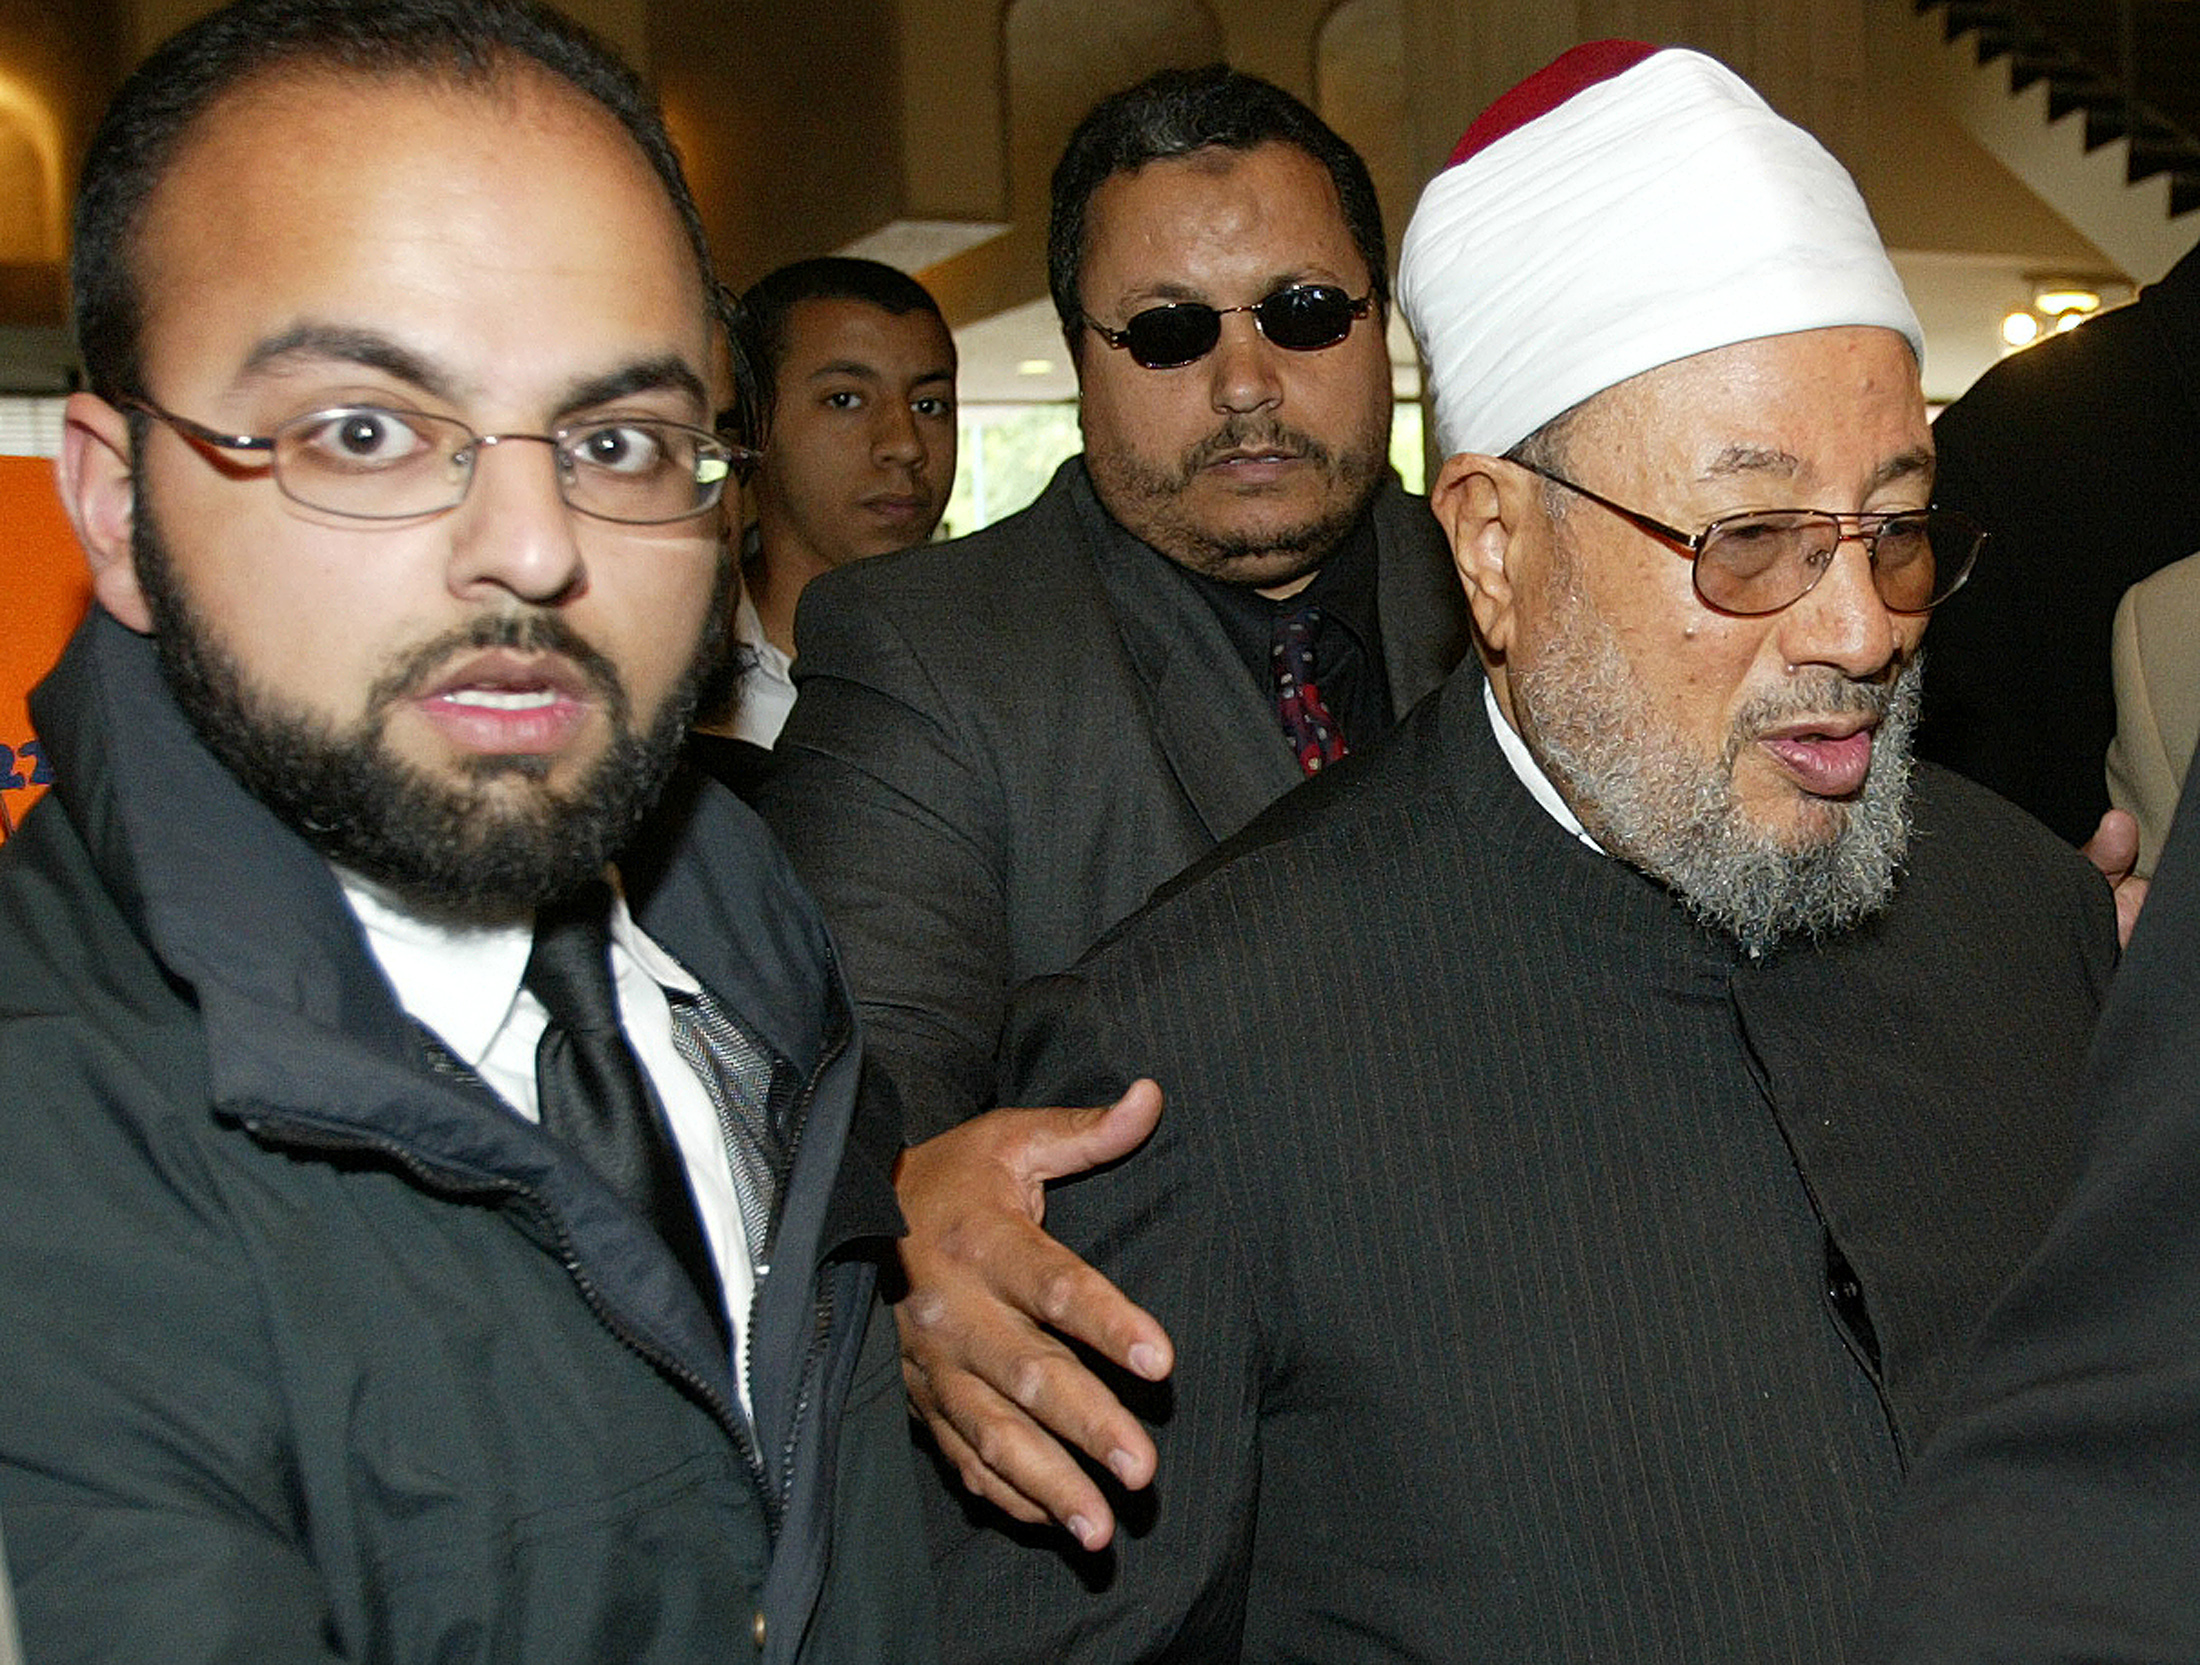 Egyptian-born Muslim cleric Yusuf Al-Qaradawi (R) arrives at the Wembley conference centre, London, July 11, 2004 before addressing a conference on education.(REUTERS/Michael Crabtree)